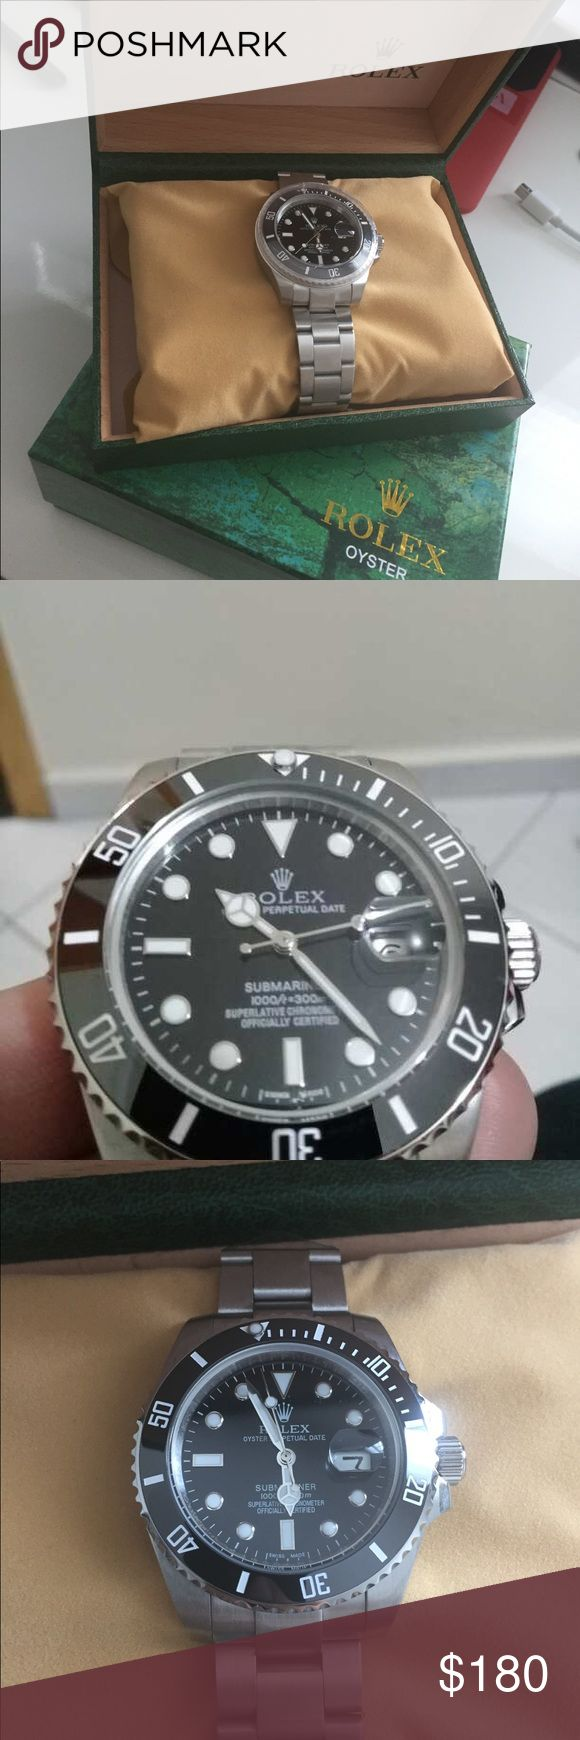 Rolex submariner - ceramic Automatic movement, hack mechanism, 2.5X mag, box included, message 9548649790 for pricing Rolex Accessories Watches